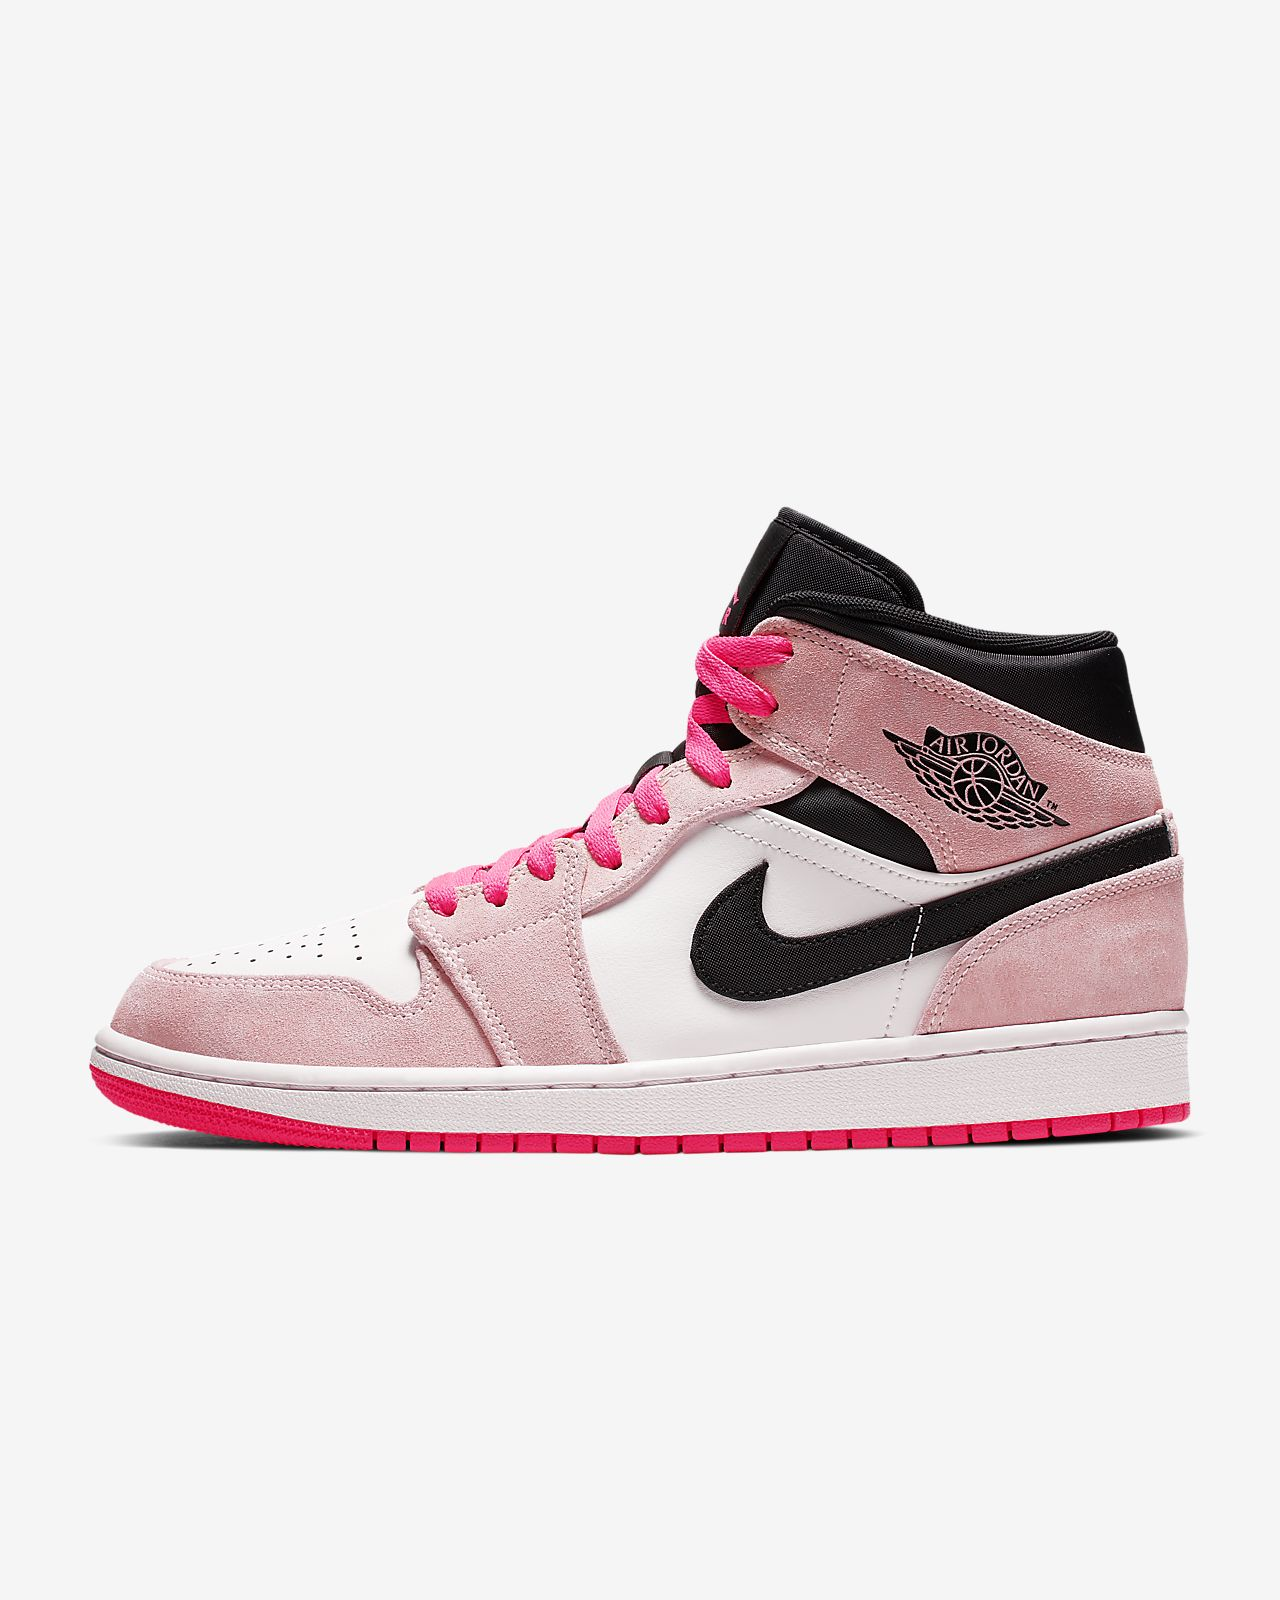 san francisco 3e939 8a68e ... Air Jordan 1 Mid SE Men s Shoe